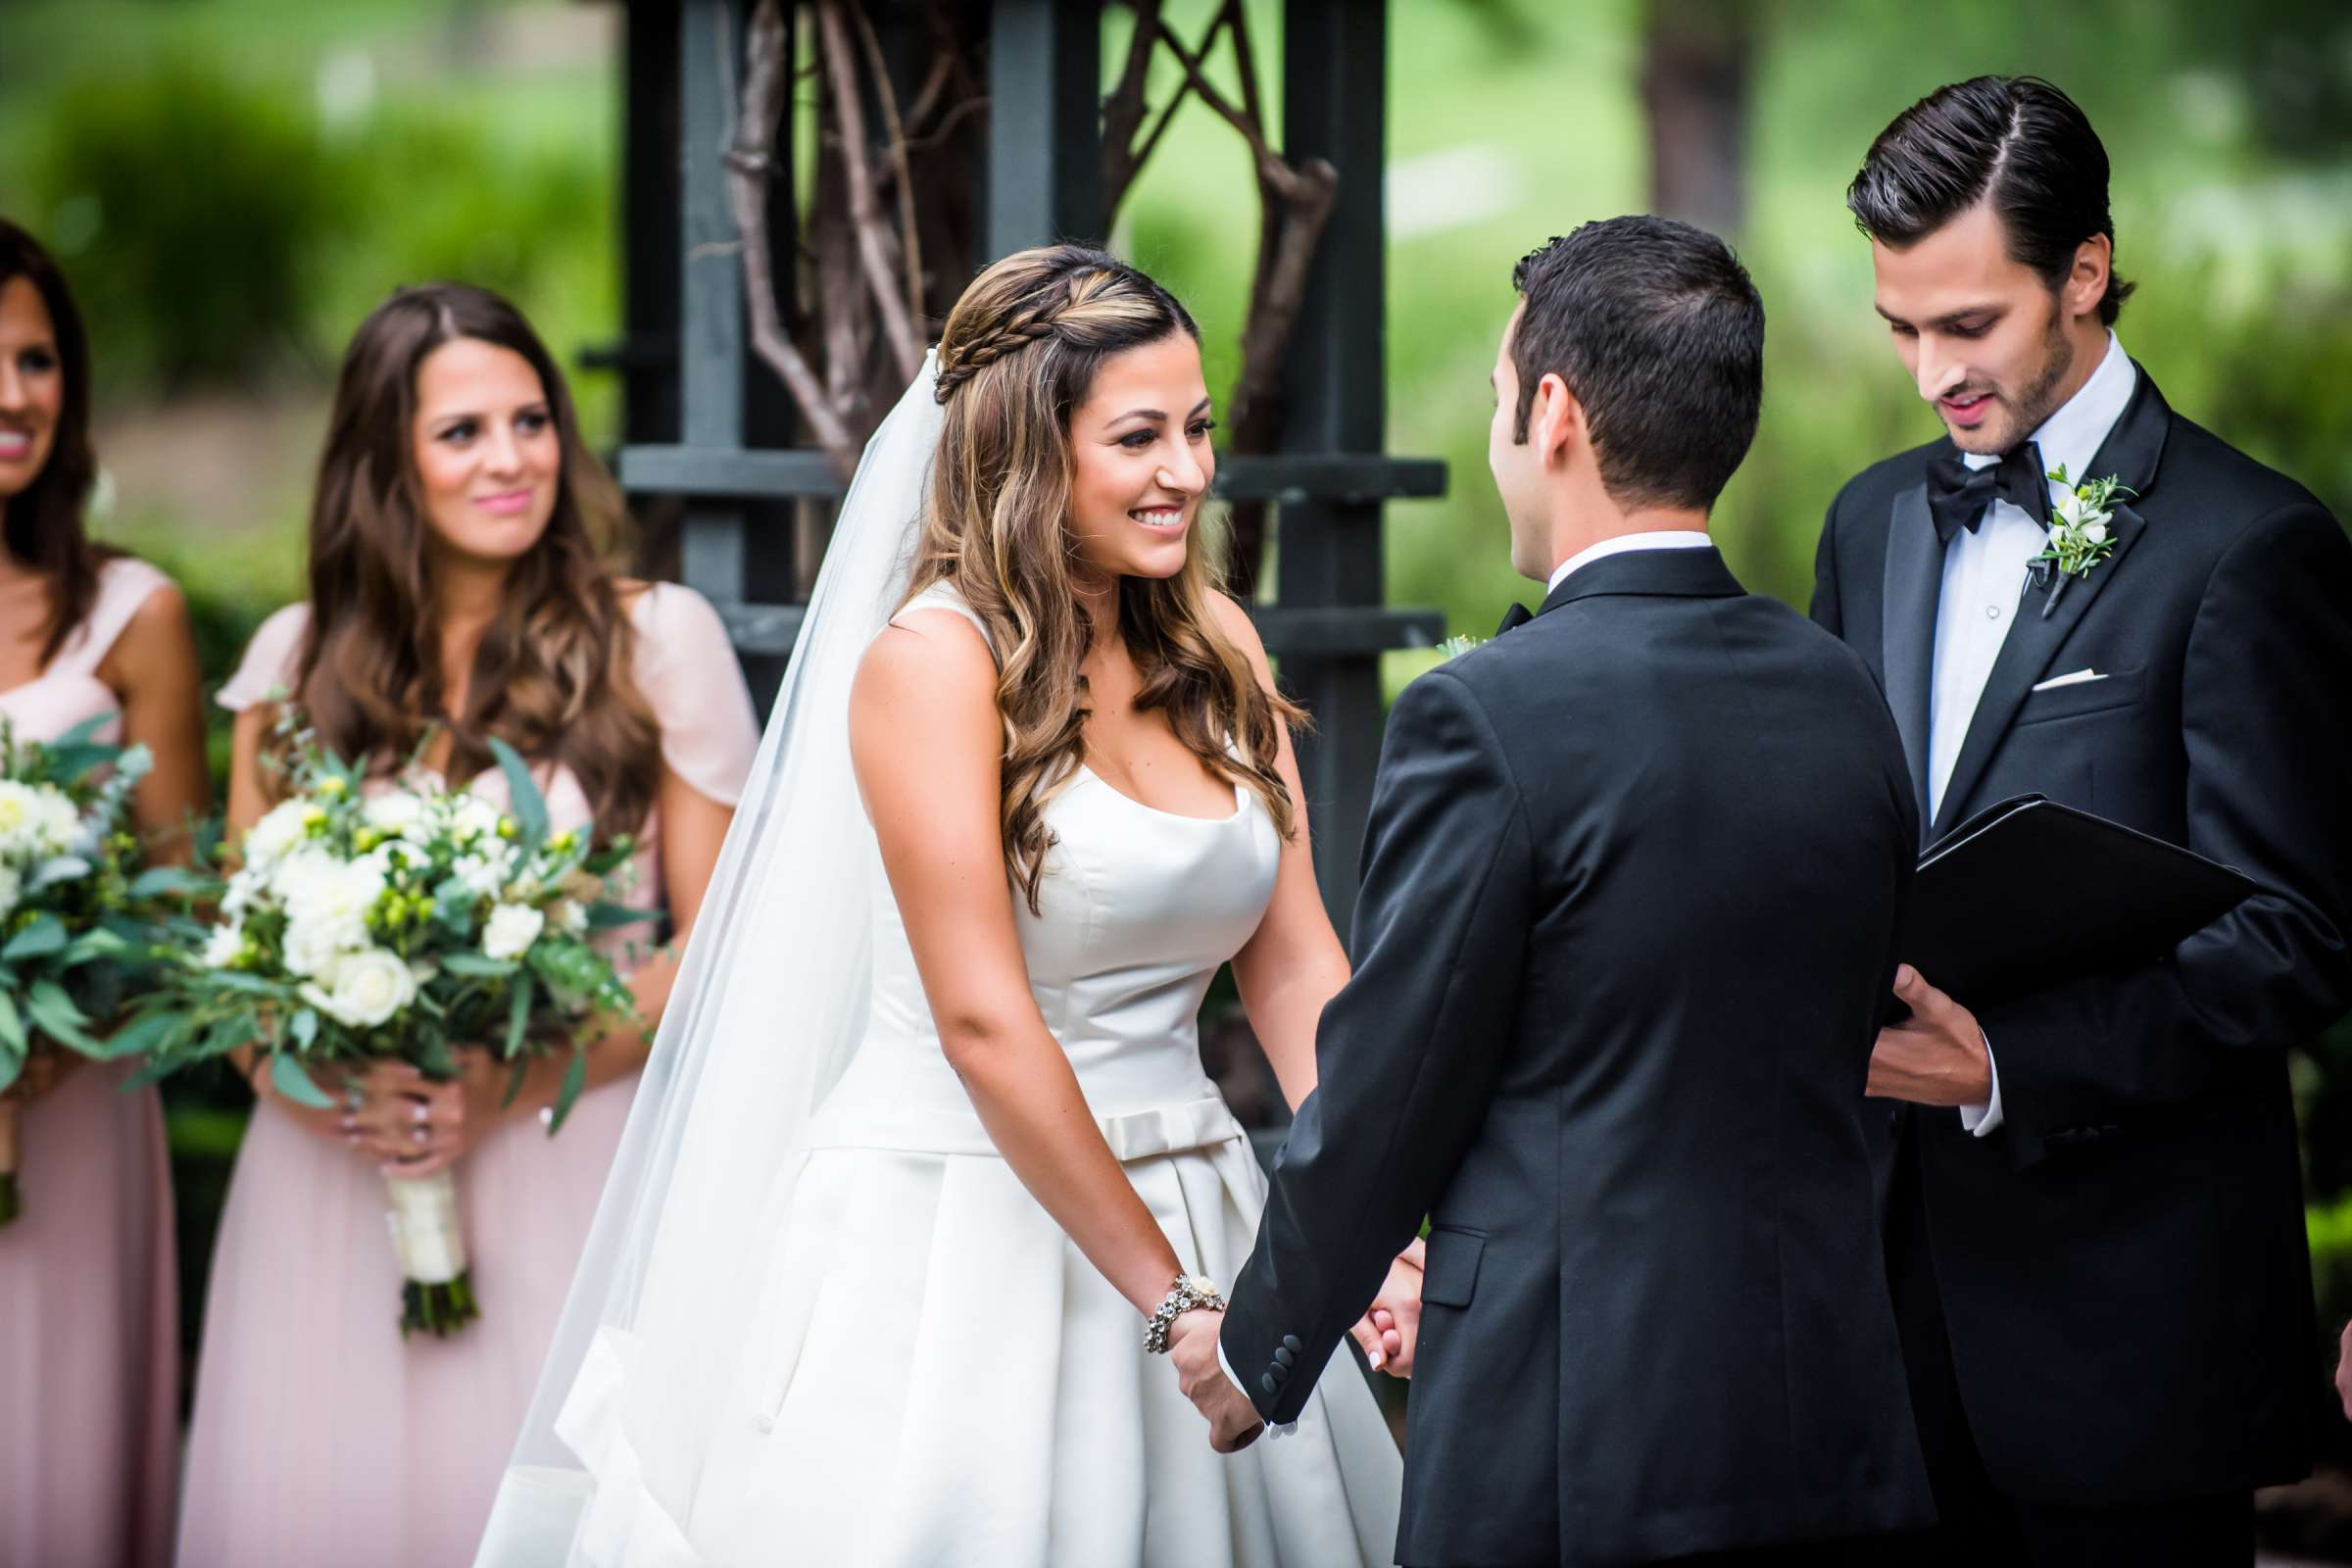 Rancho Bernardo Inn Wedding coordinated by Très Chic Events, Stefania and Nicholas Wedding Photo #38 by True Photography